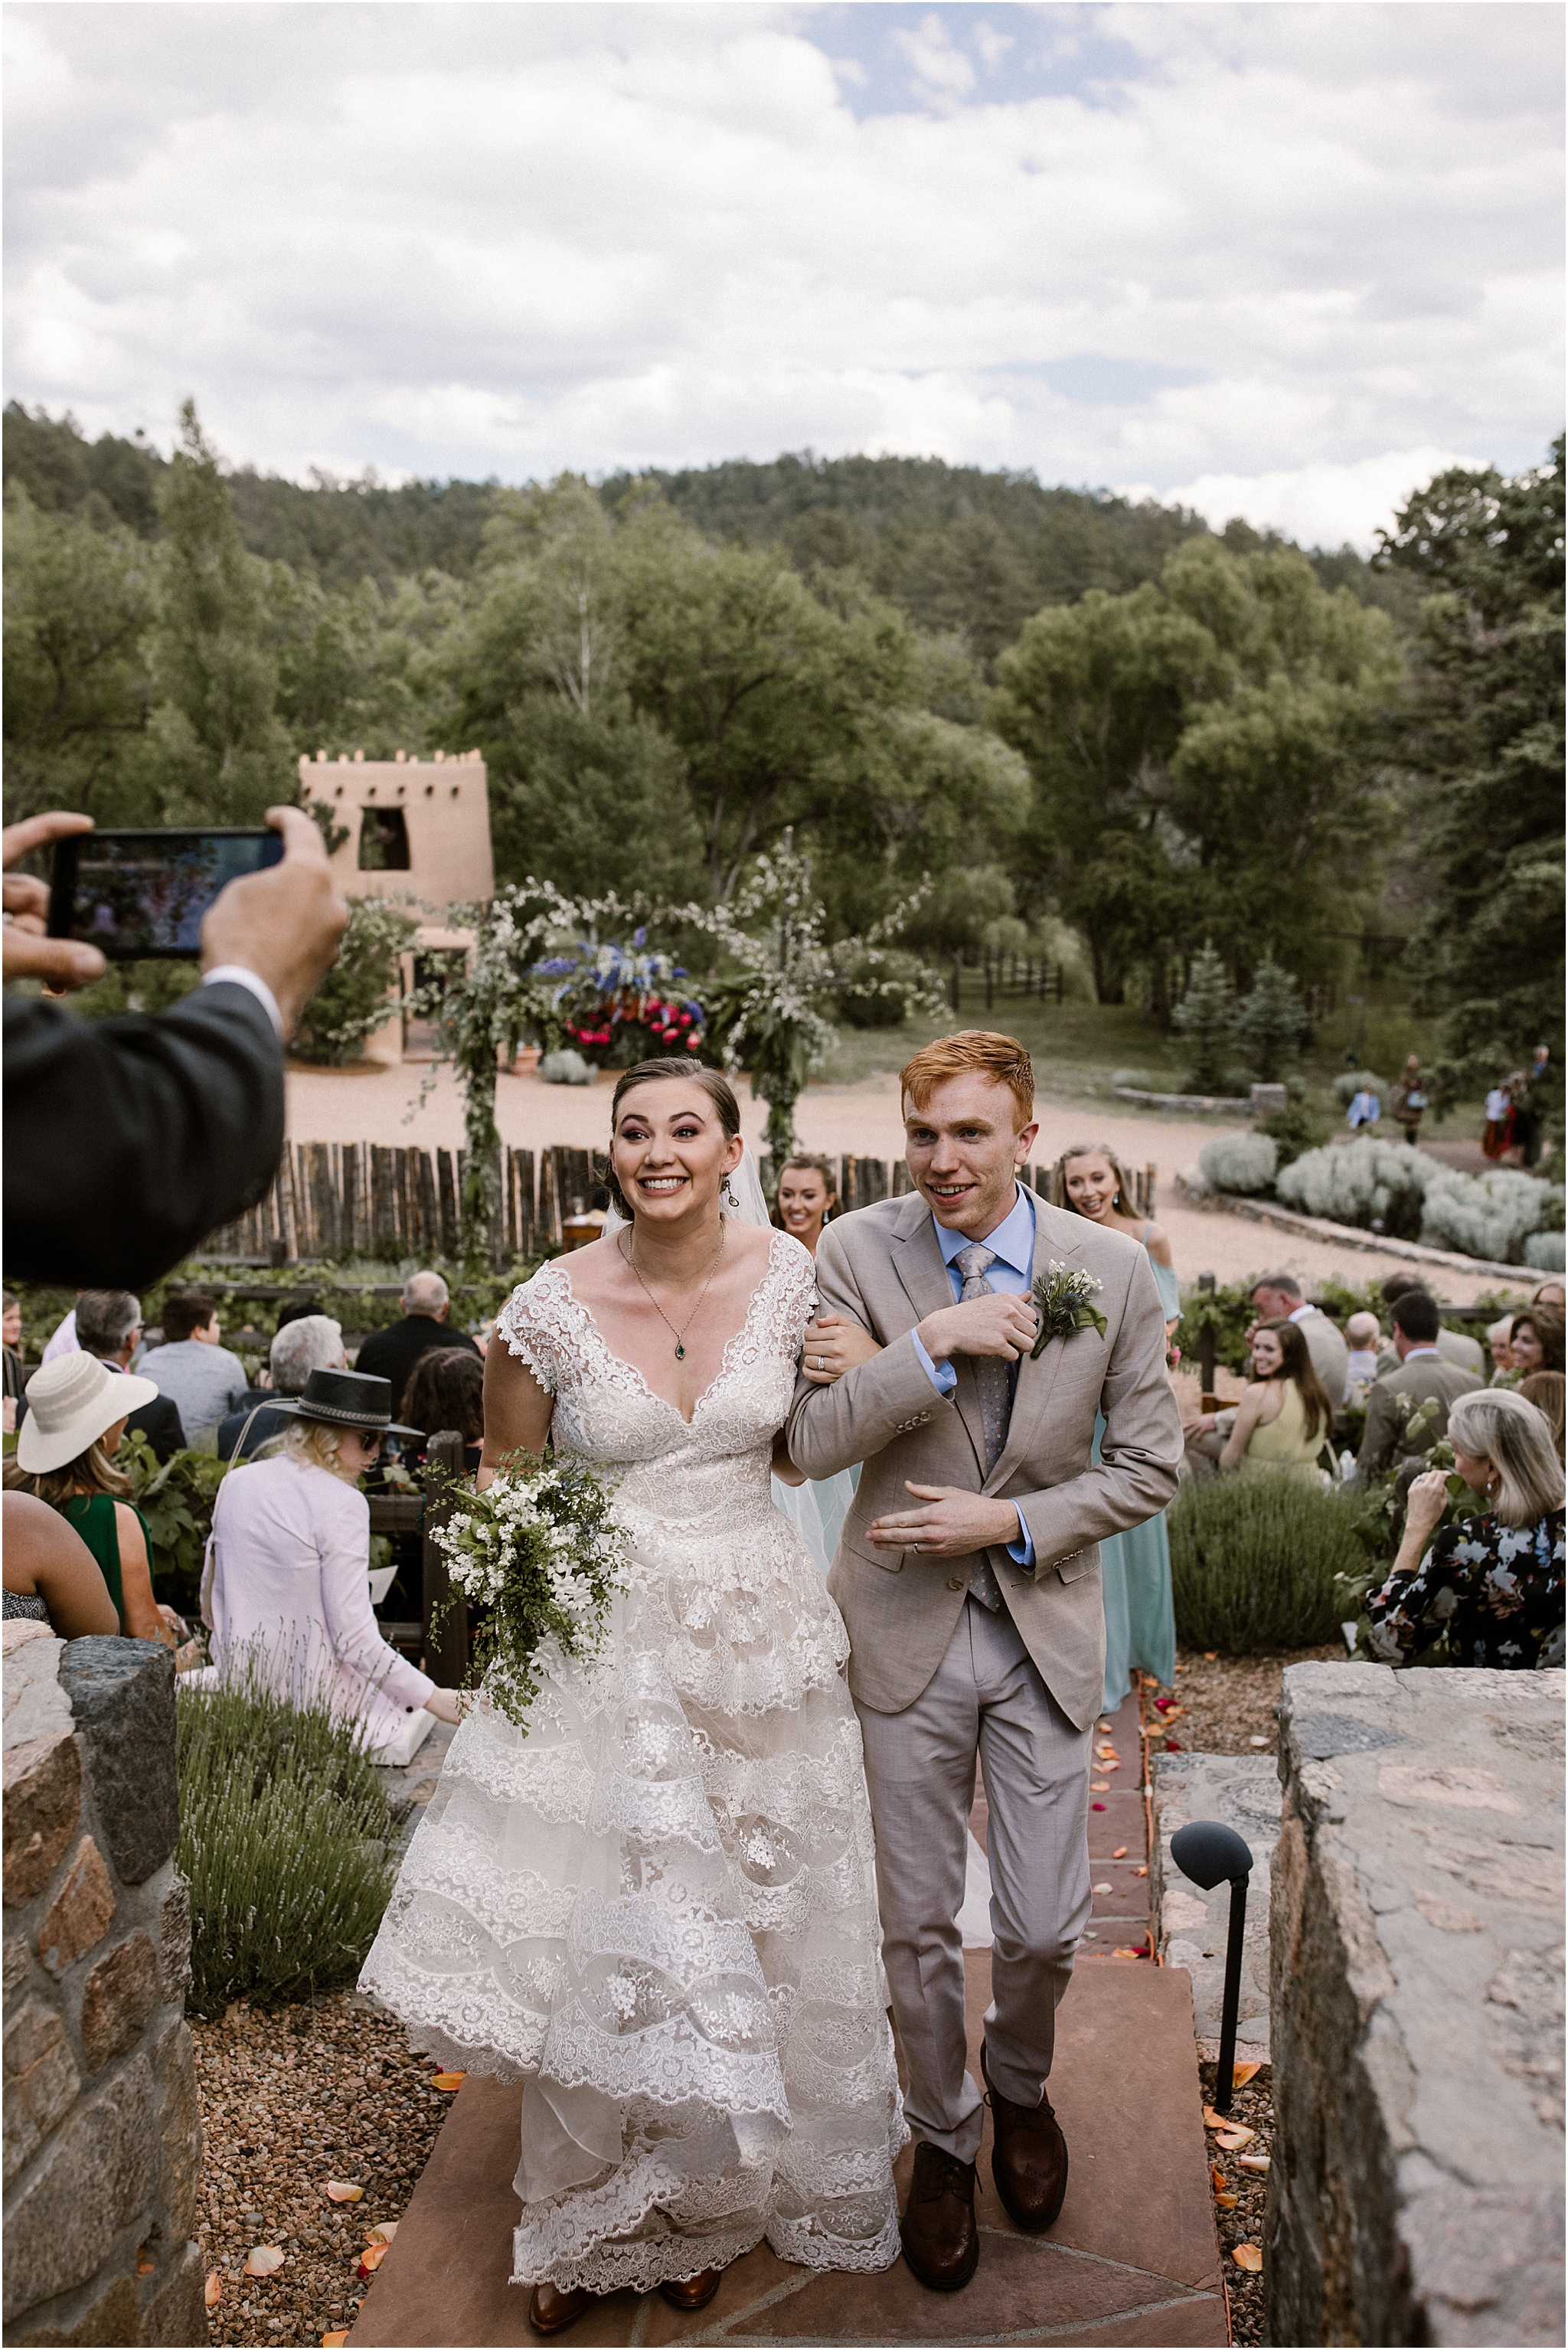 AMELIA_JASON_SANTA FE_ WEDDING_BLUE ROSE PHOTOGRAPHY75